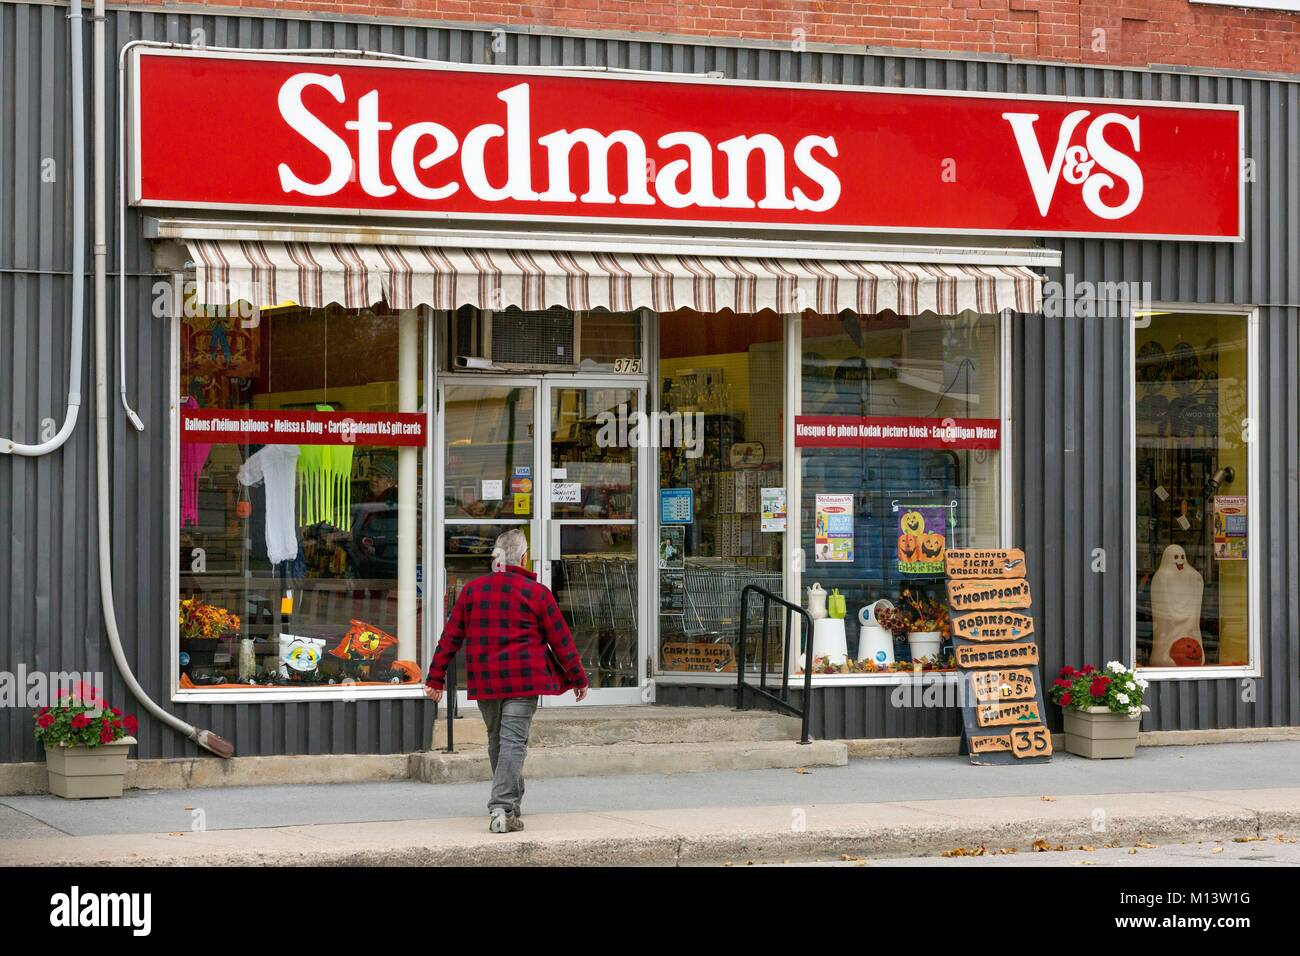 Canada, Province of Quebec, Outaouais, Pontiac Region, Shawville, Main Street, Stedmans General Store - Stock Image